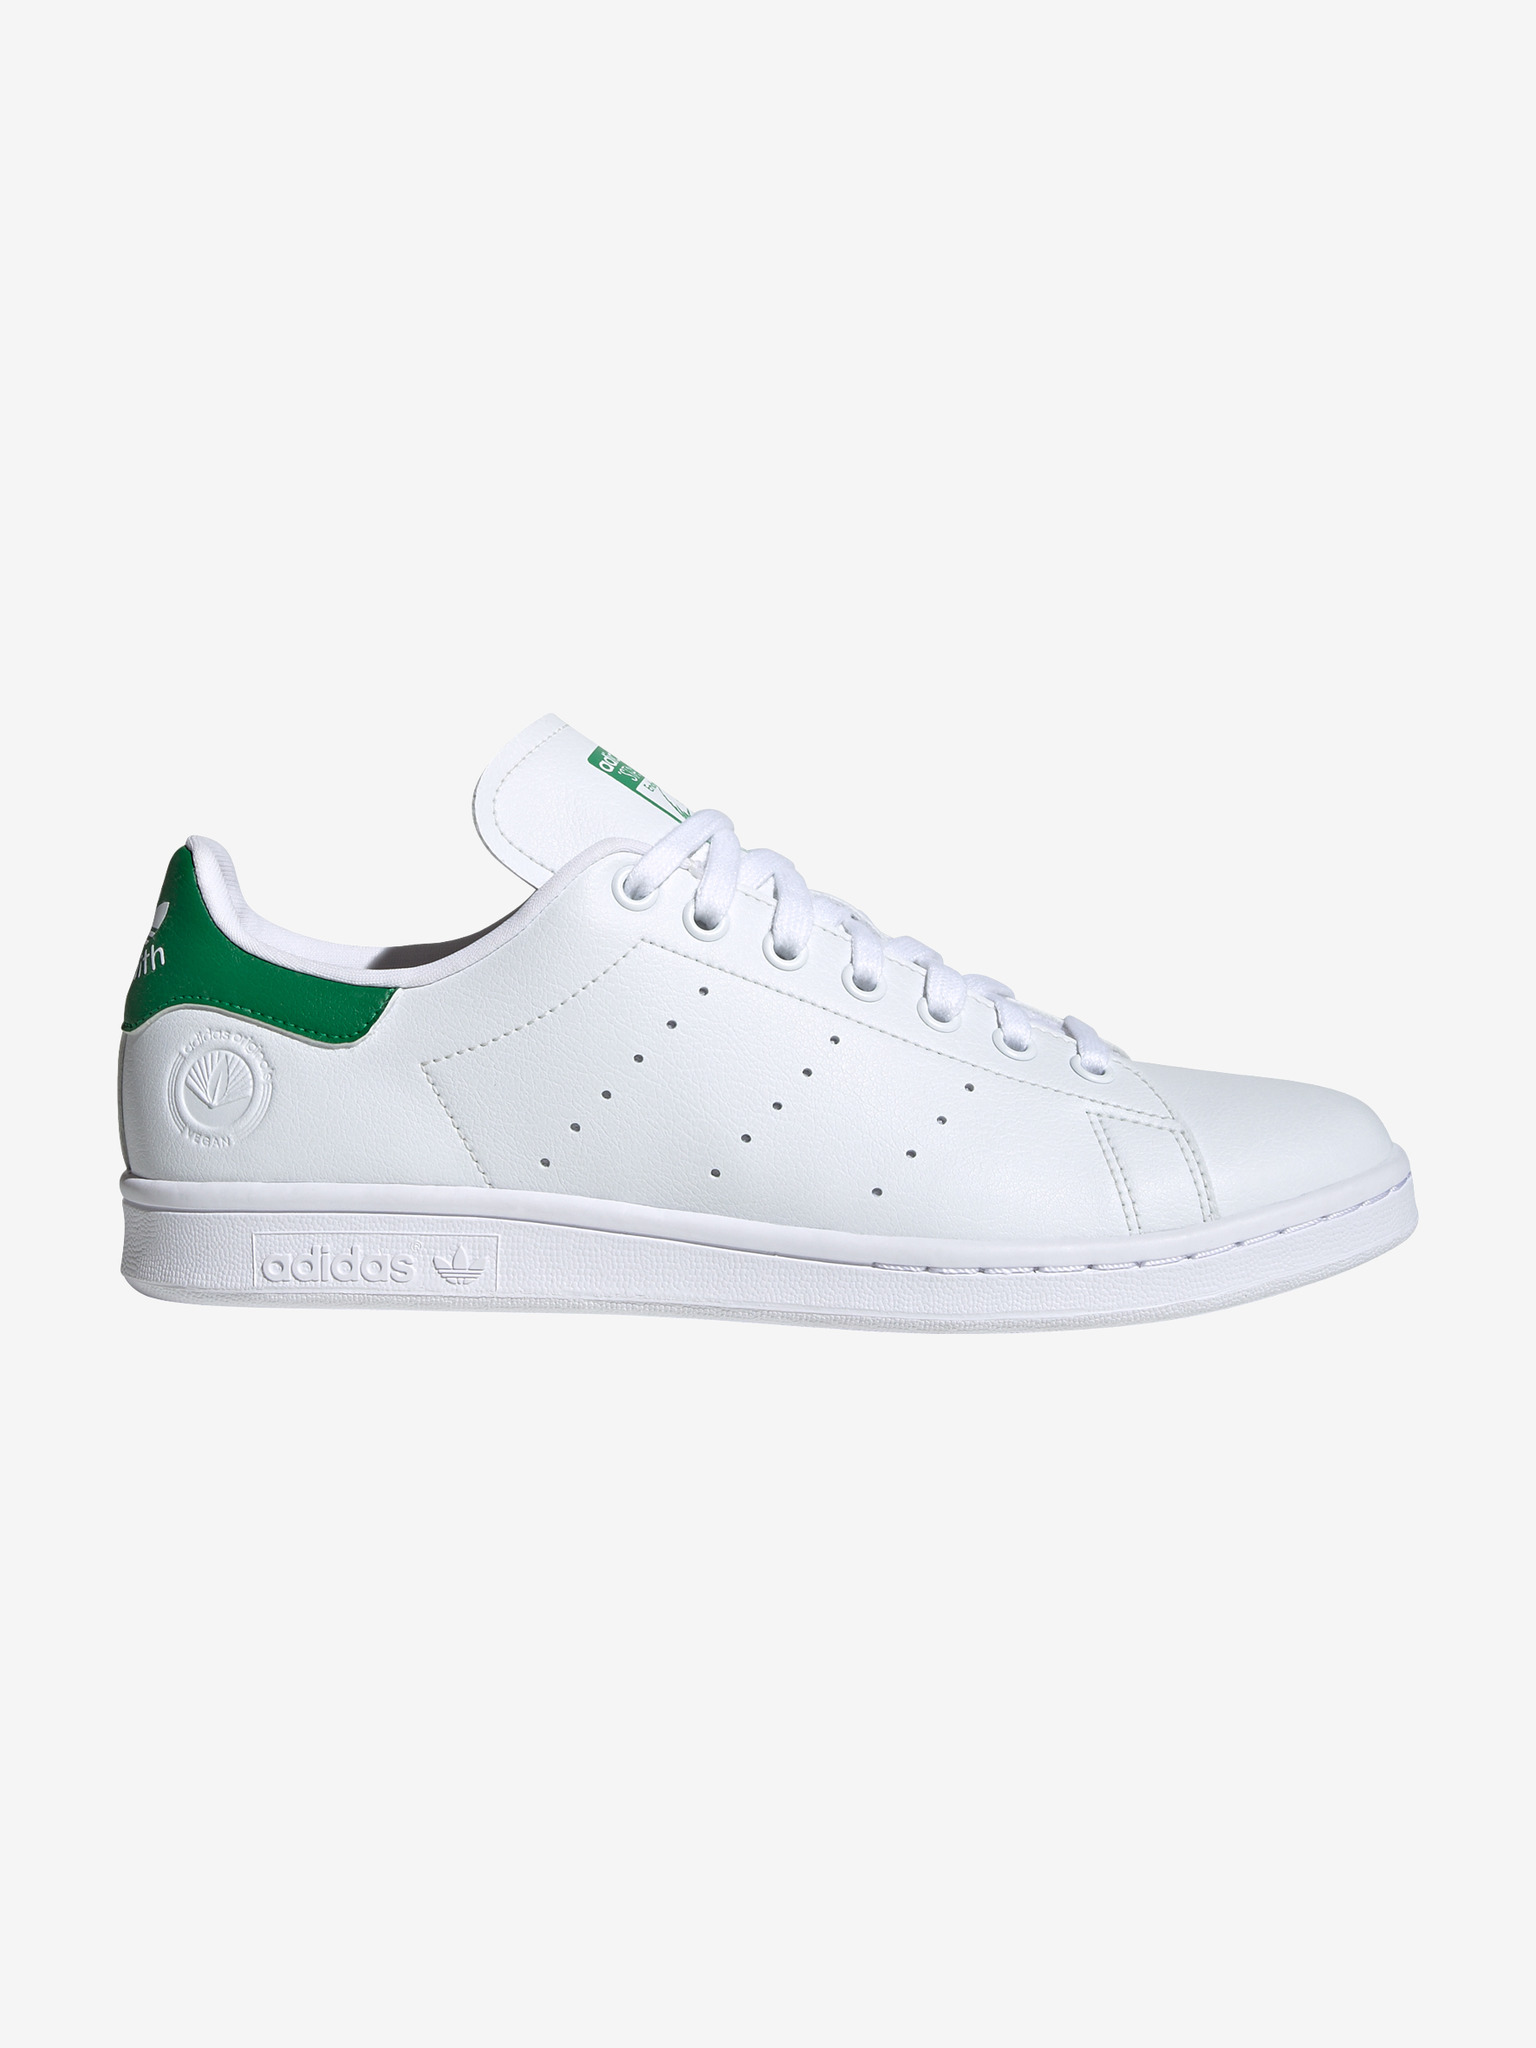 Stan Smith Vegan Tenisky adidas Originals